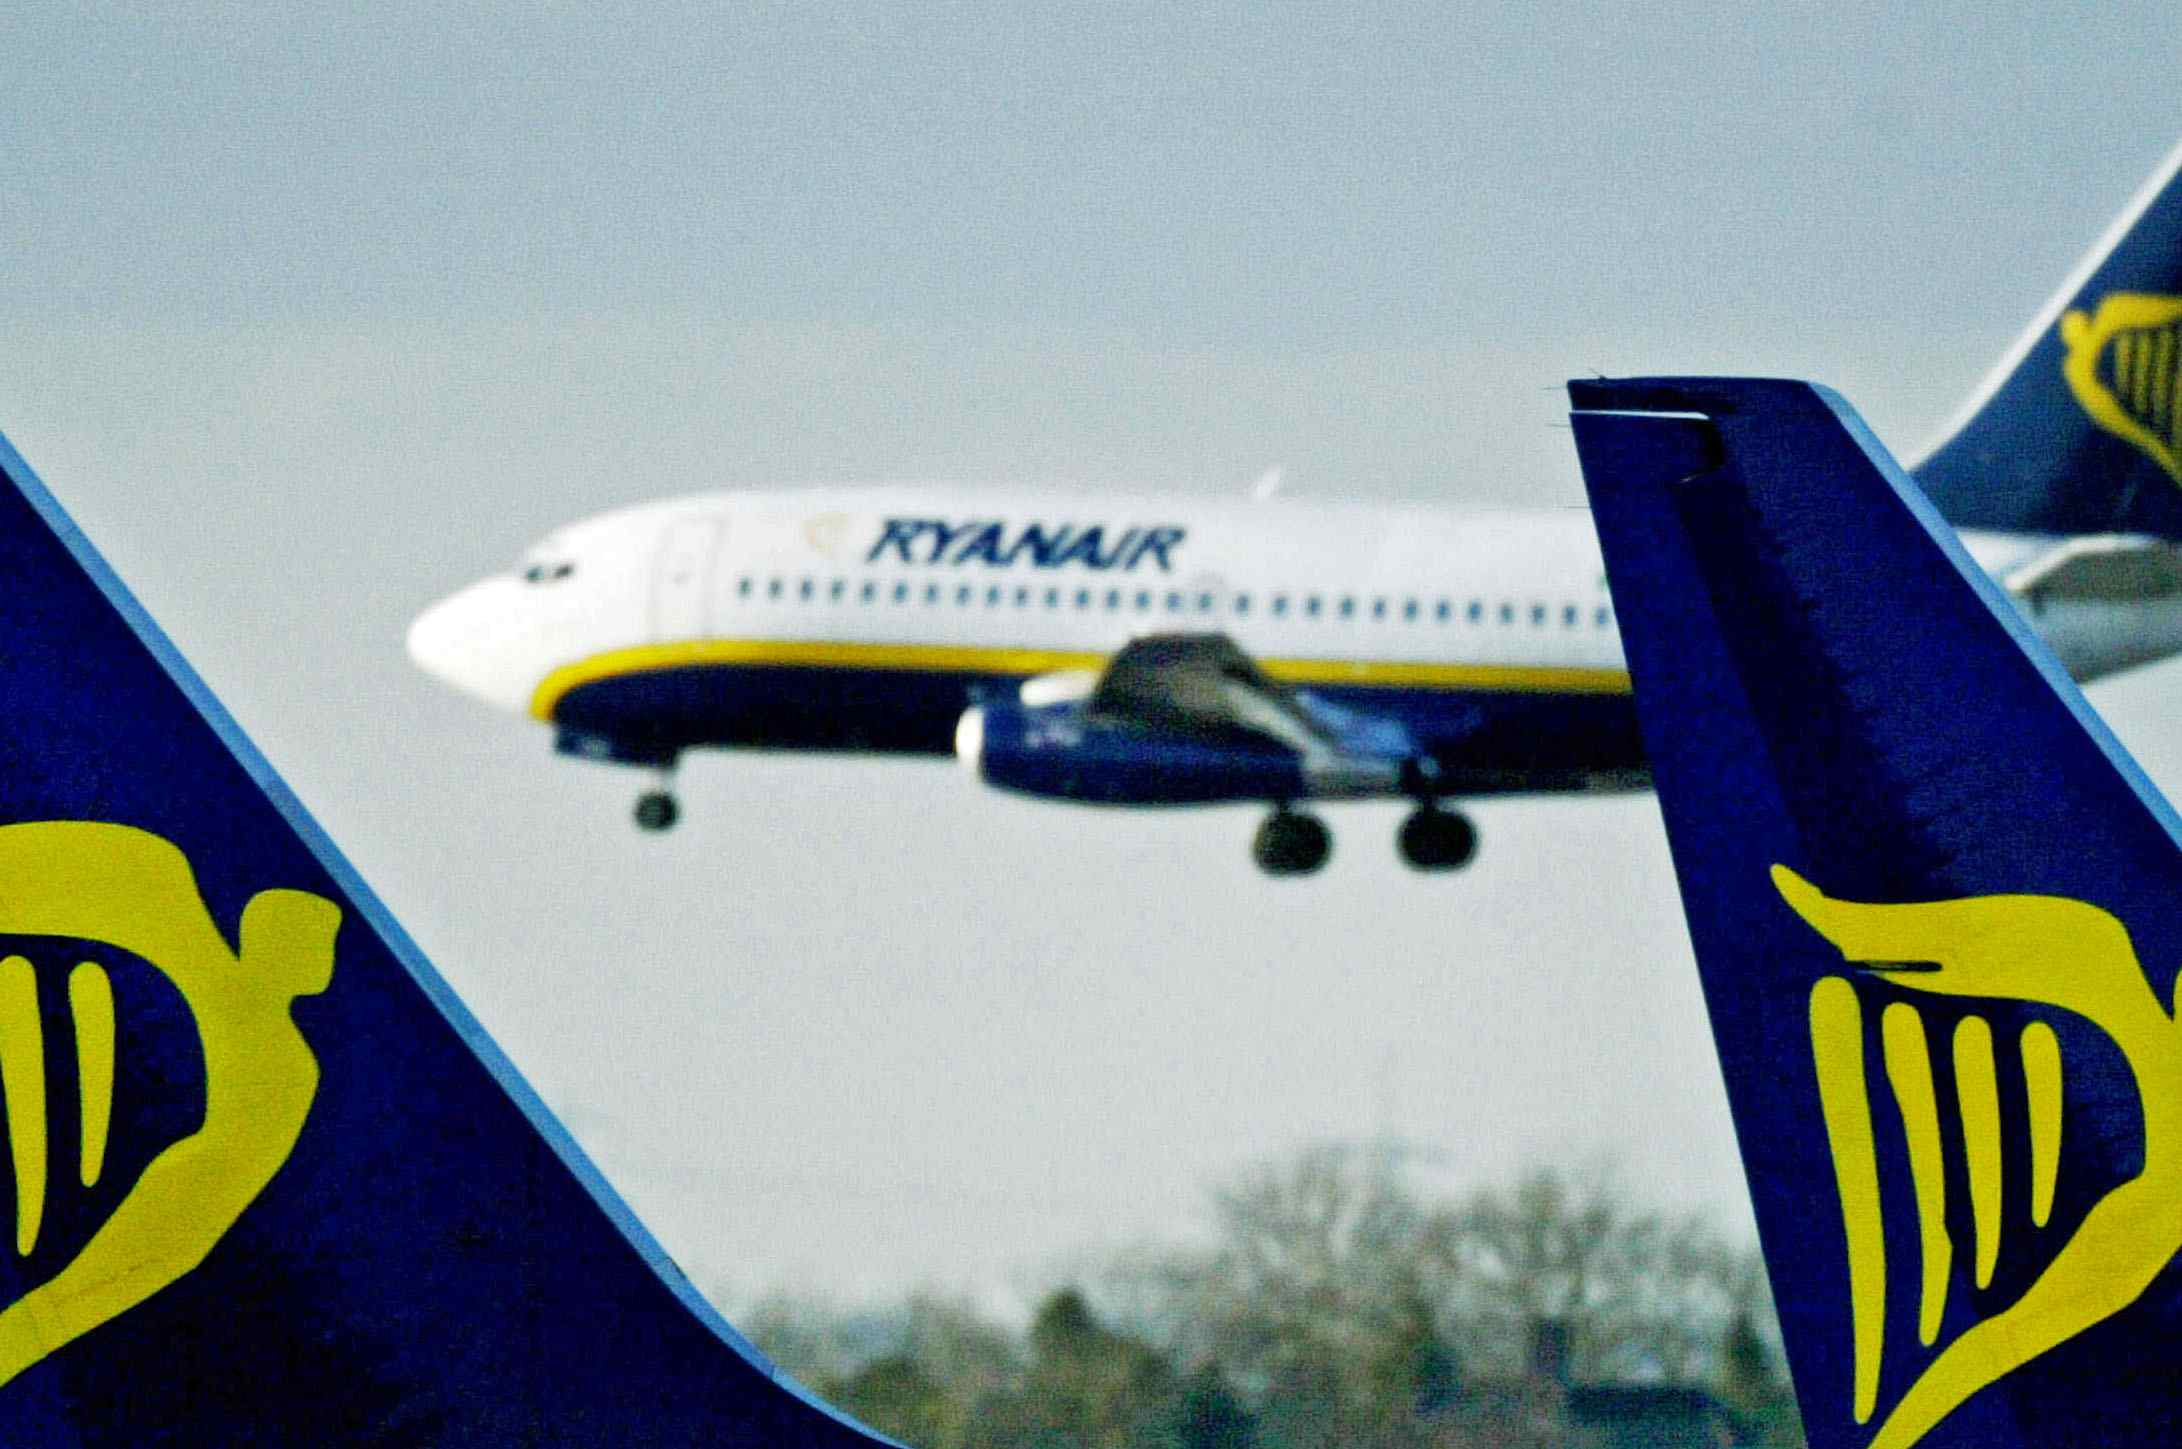 Ryanair is a low-cost carrier operating in Europe.